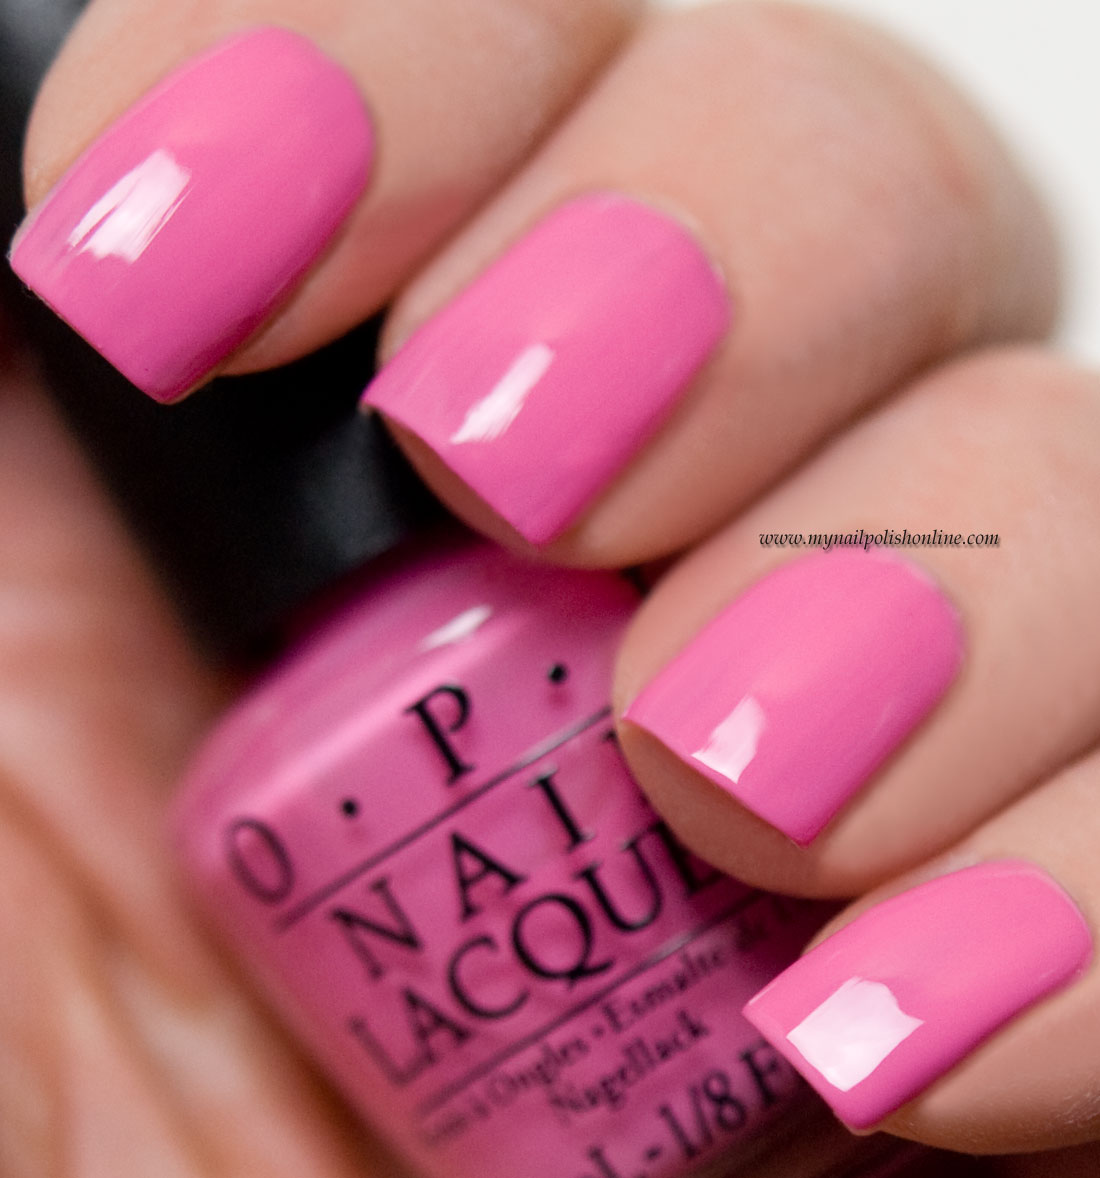 OPI - Two Timing the zones